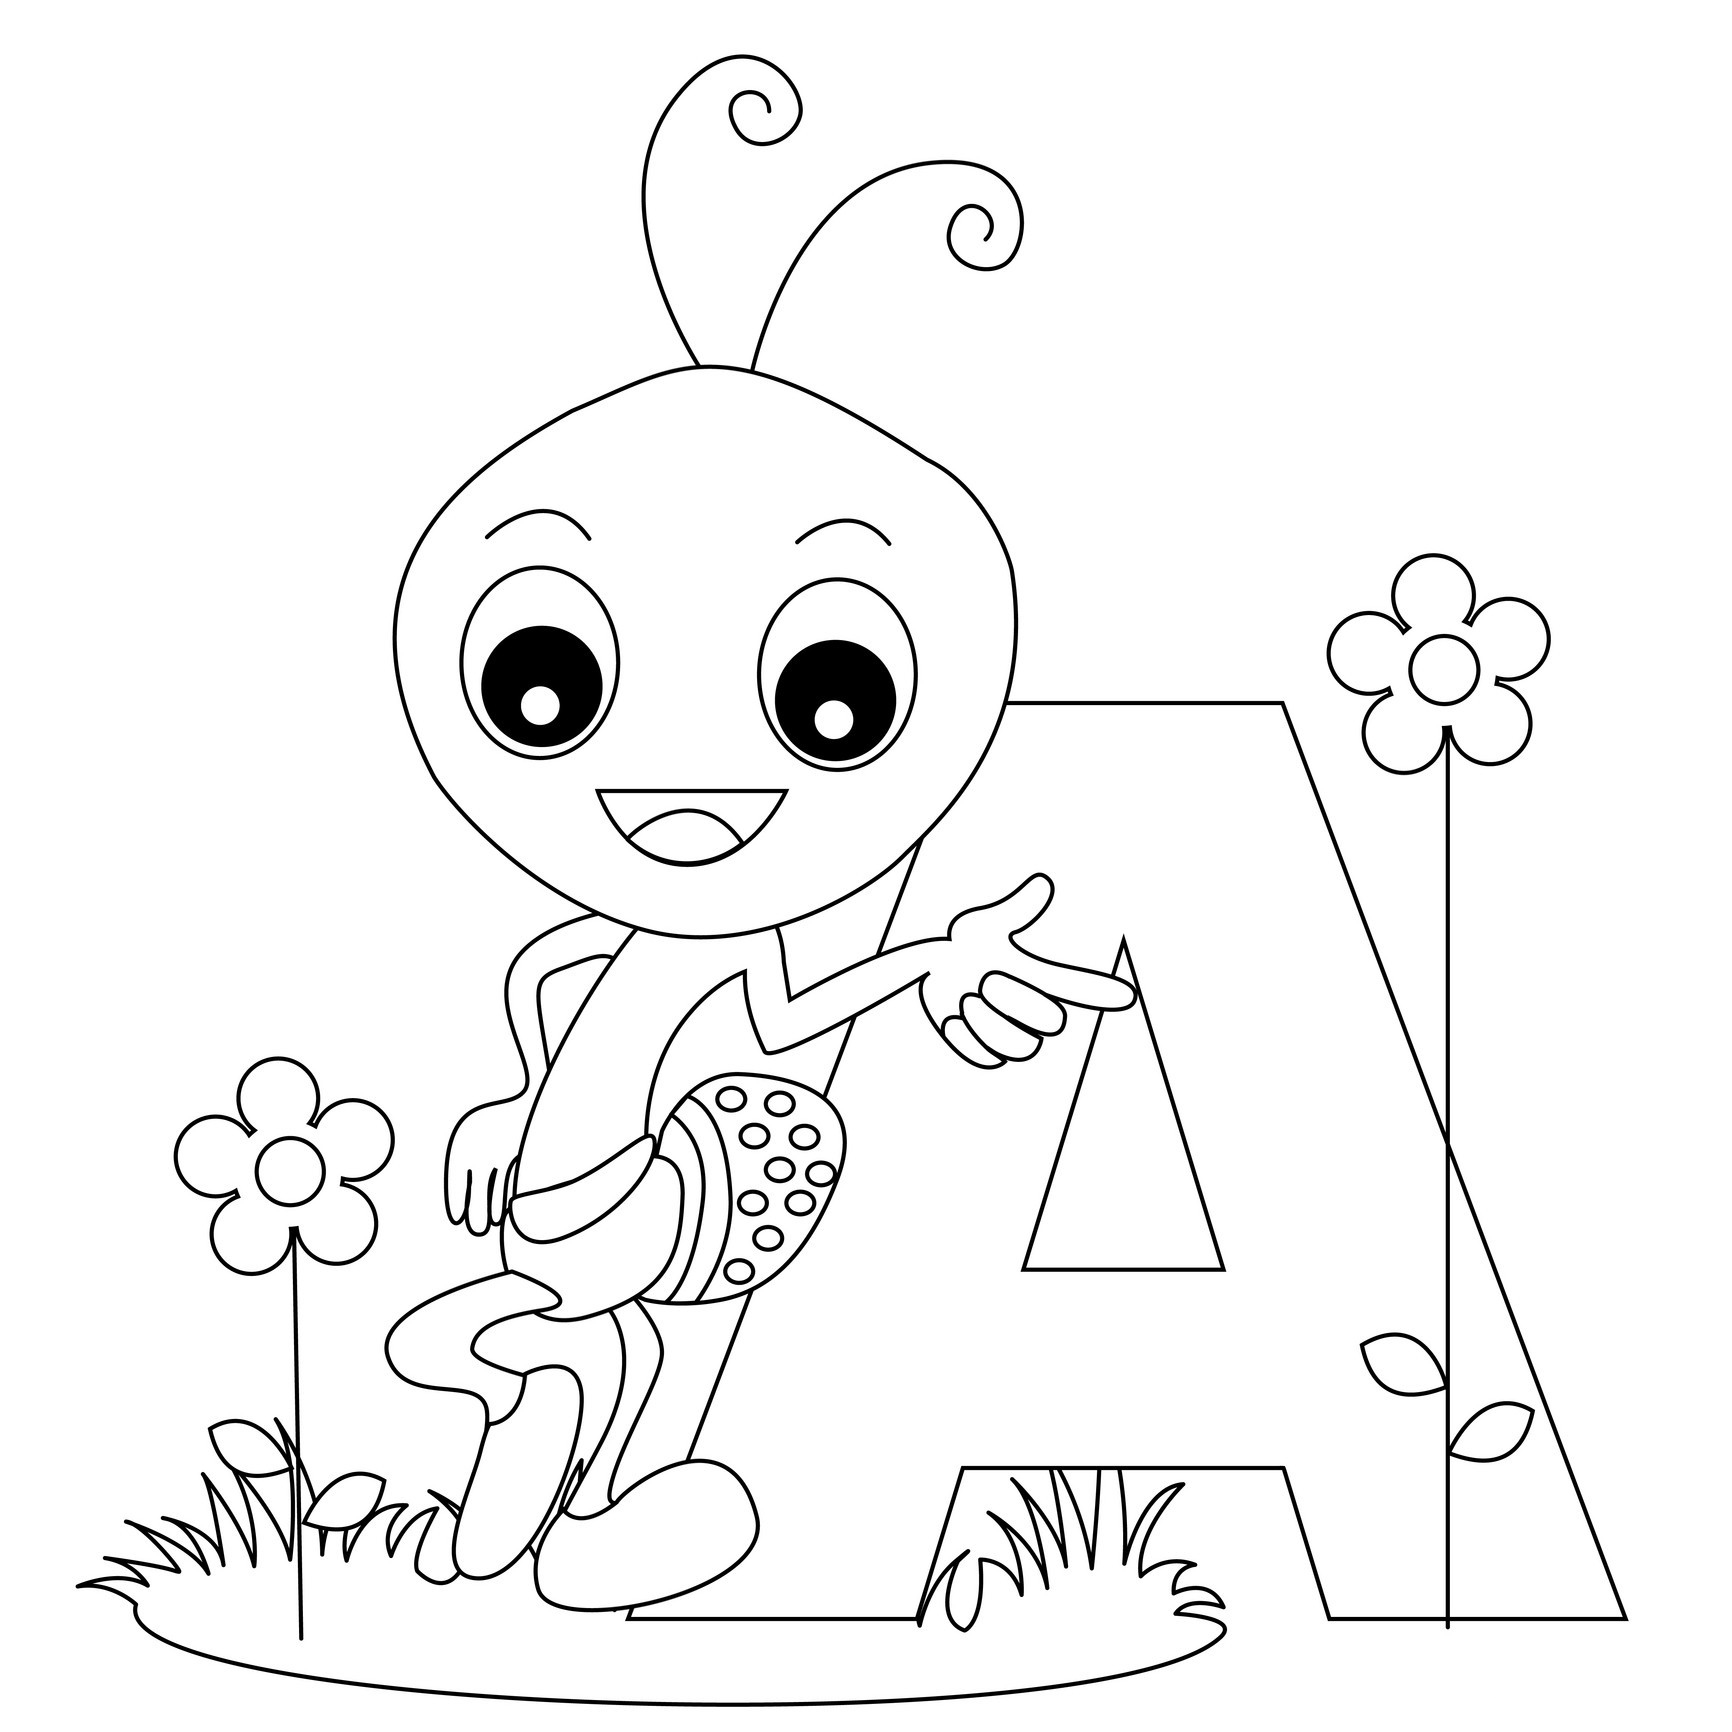 alphabet coloring book the quandong tree colouring pages book coloring alphabet